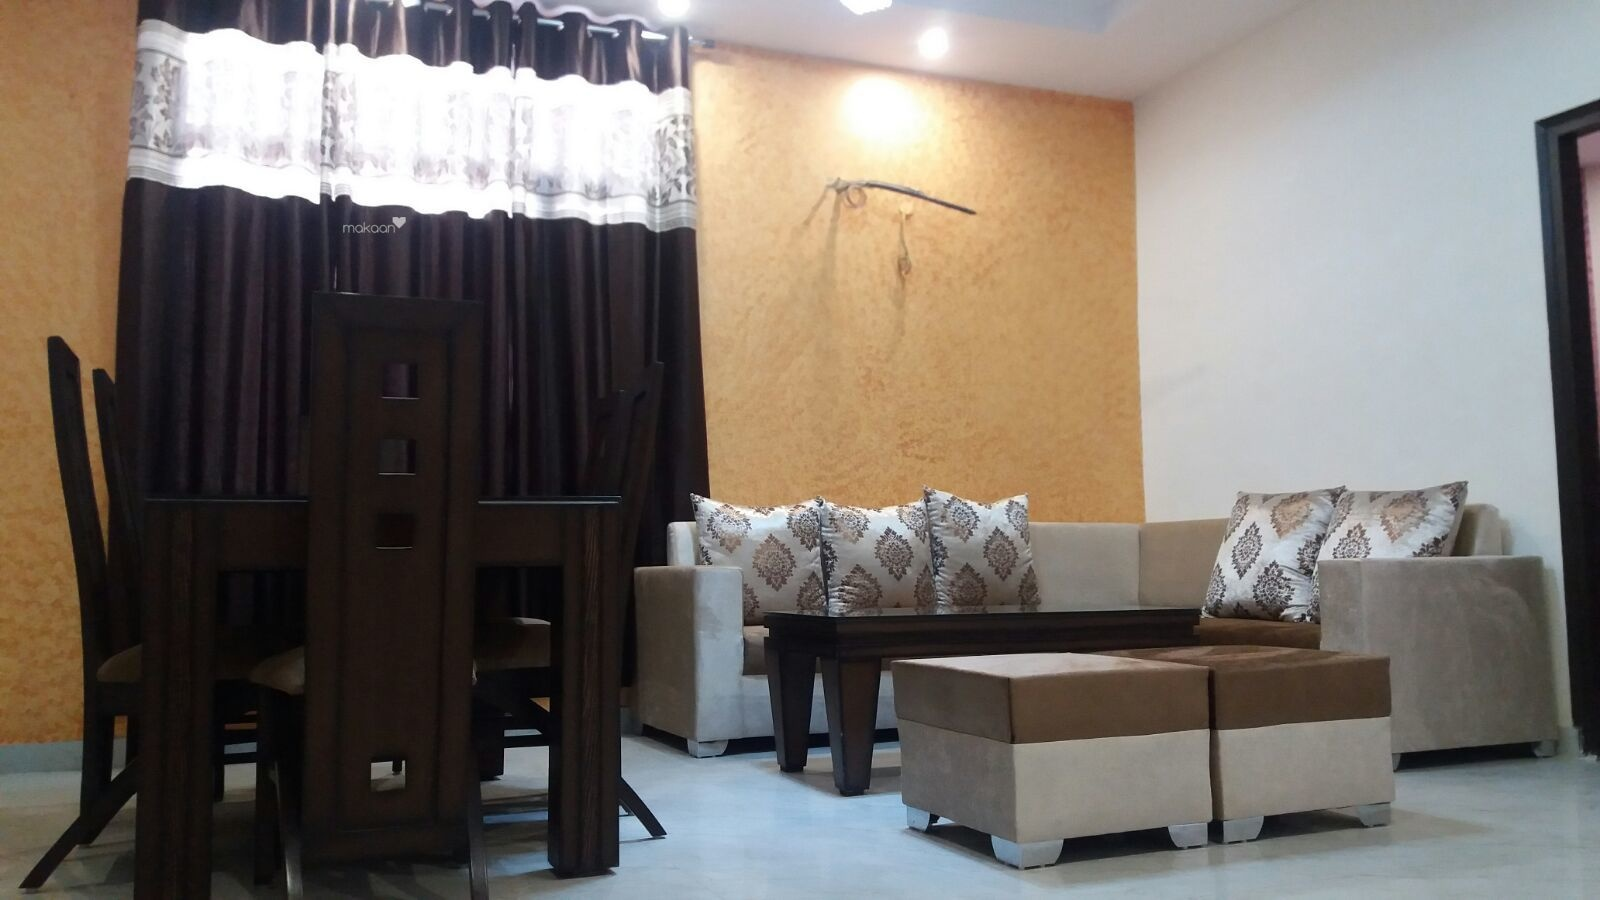 1550 sq ft 3BHK 3BHK+3T (1,550 sq ft) + Servant Room Property By At Realtors In Project, Sector 20 Panchkula